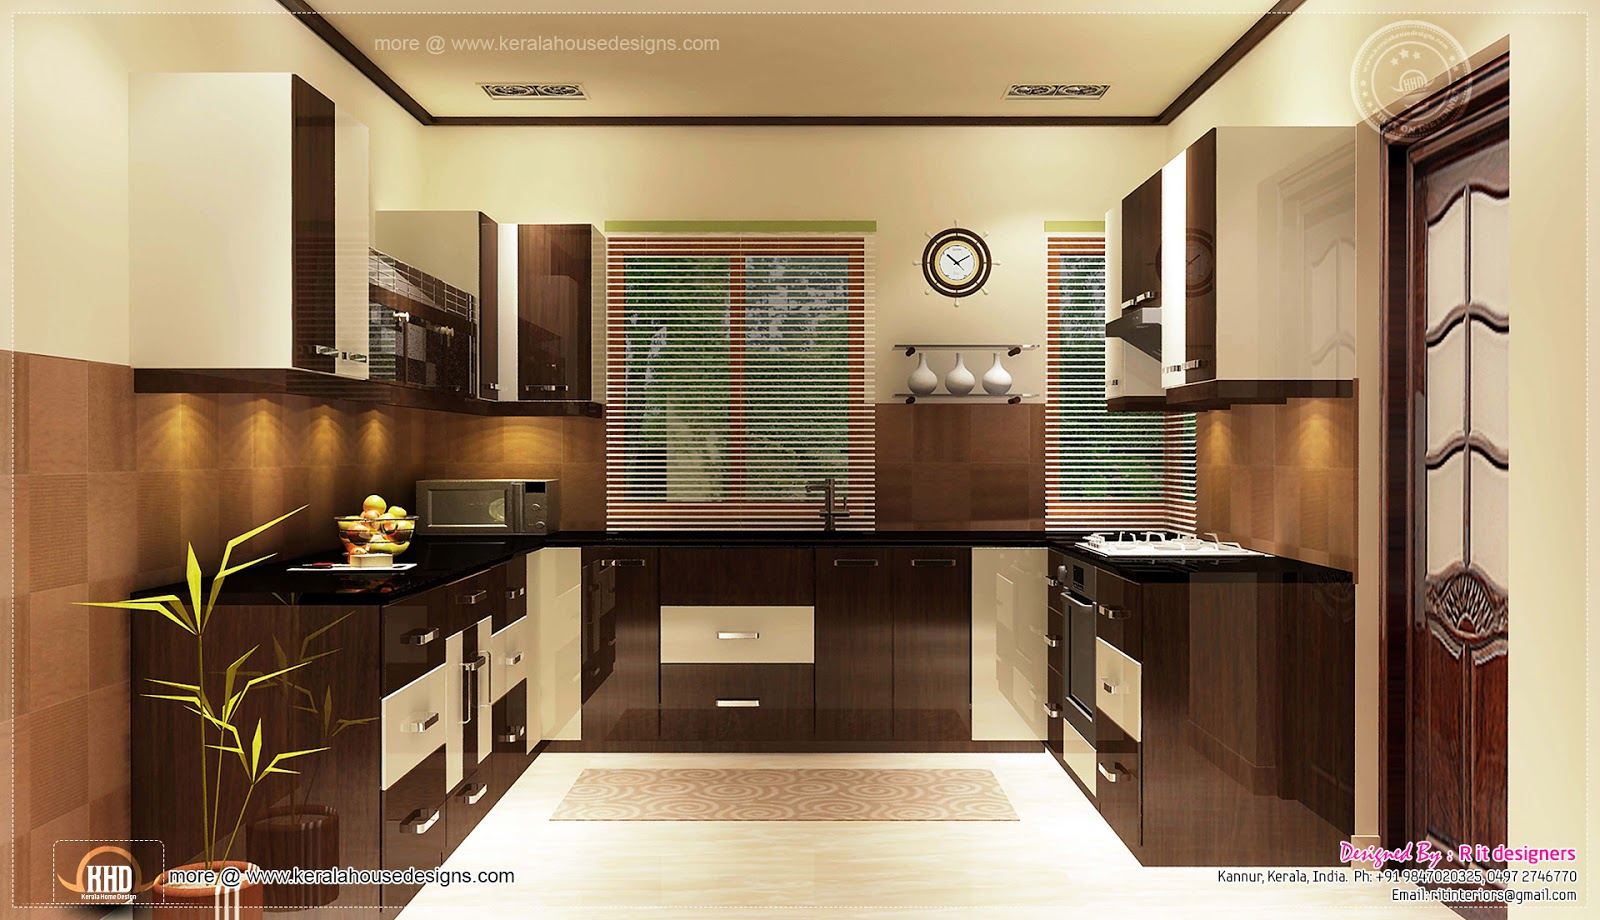 Home interior designs by rit designers kerala home for House interior design photos